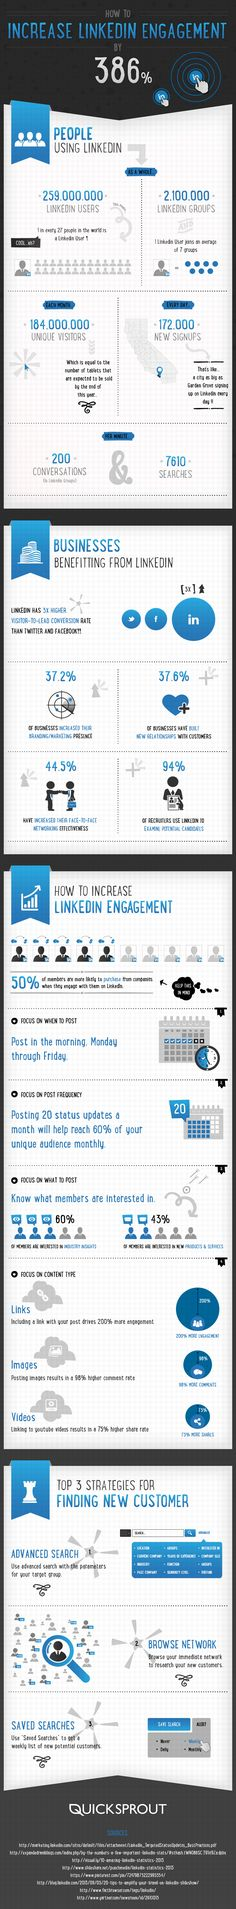 How to Increase LinkedIn Engagement 300 Percent [INFOGRAPHIC] | Social Media Today